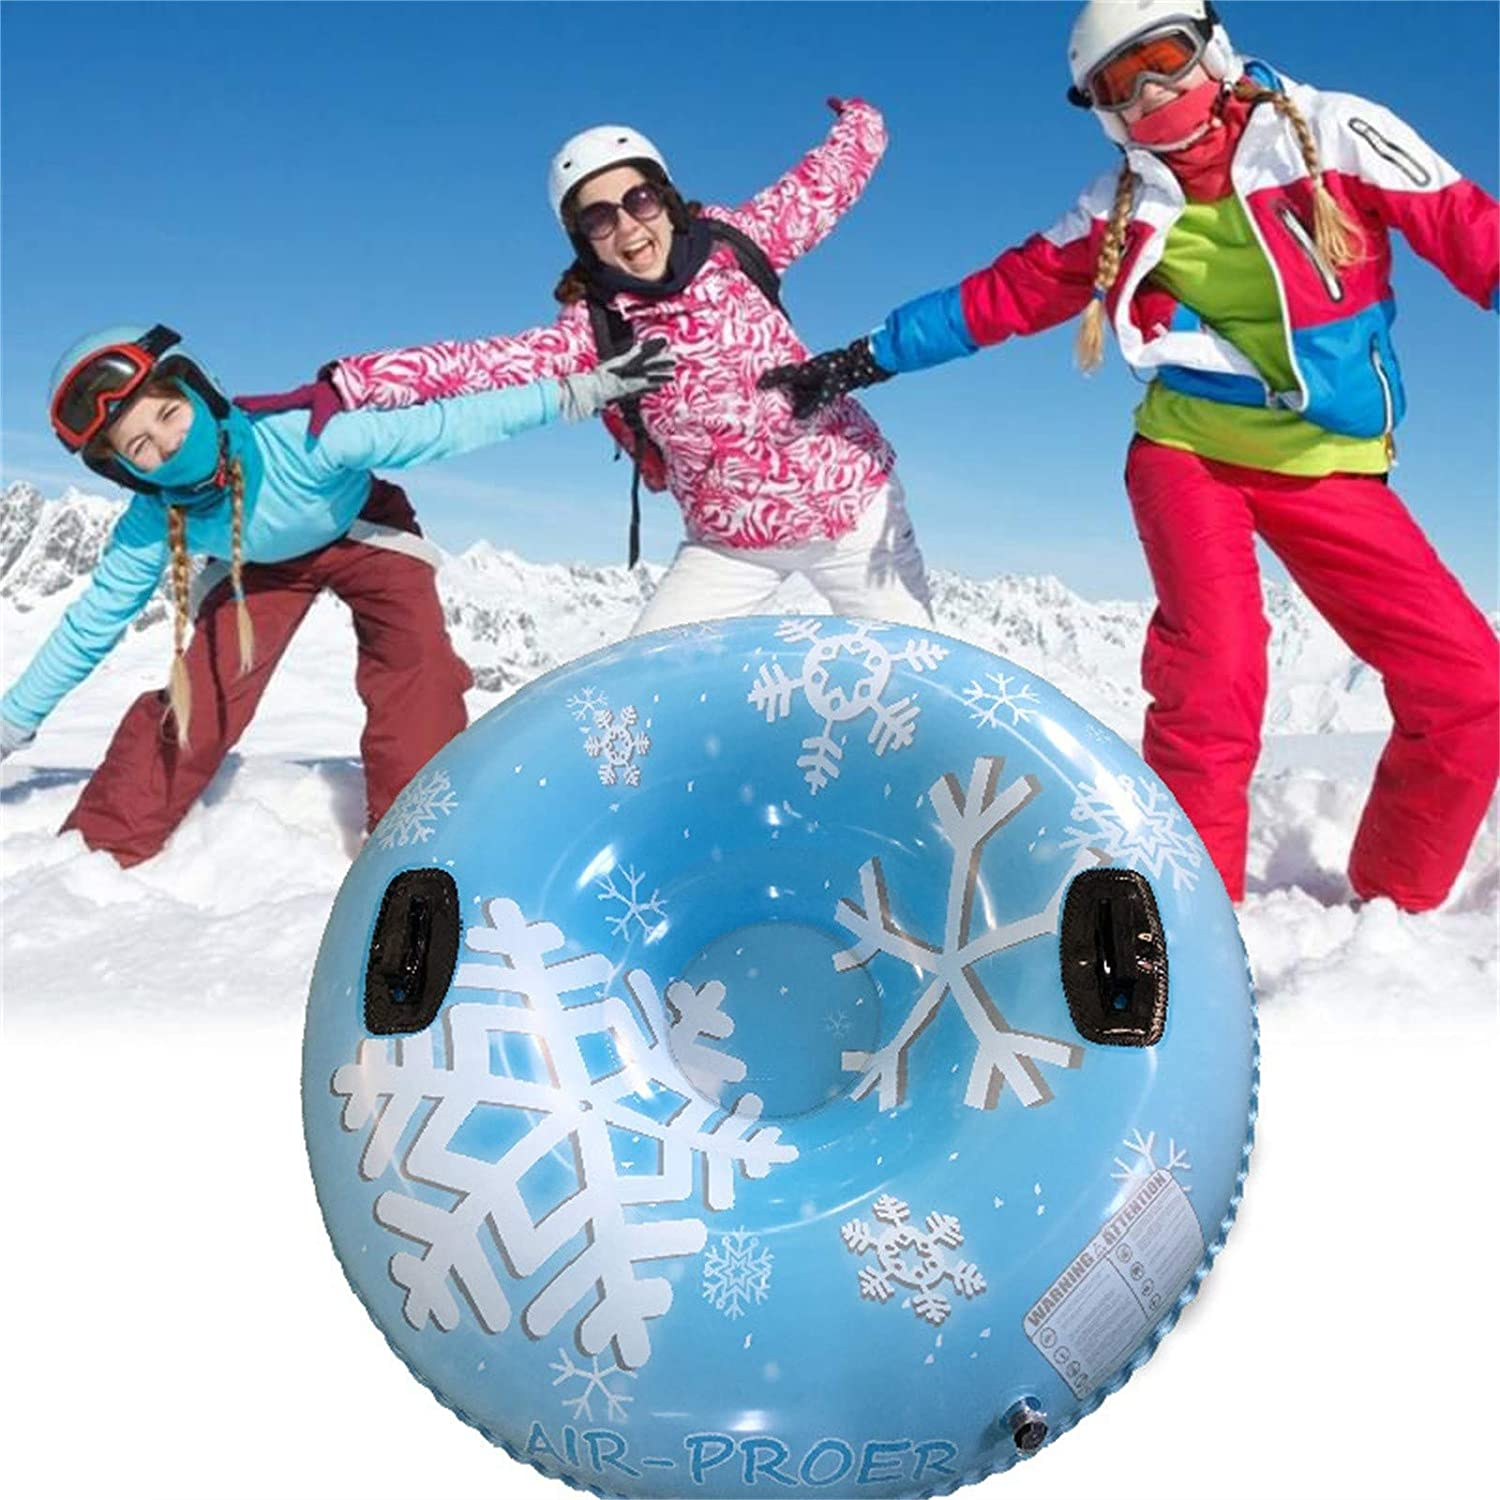 Wociaosmd Discount mail order Snow Tubes for Sledding Tube 31 favorite Inflatable 47Inch